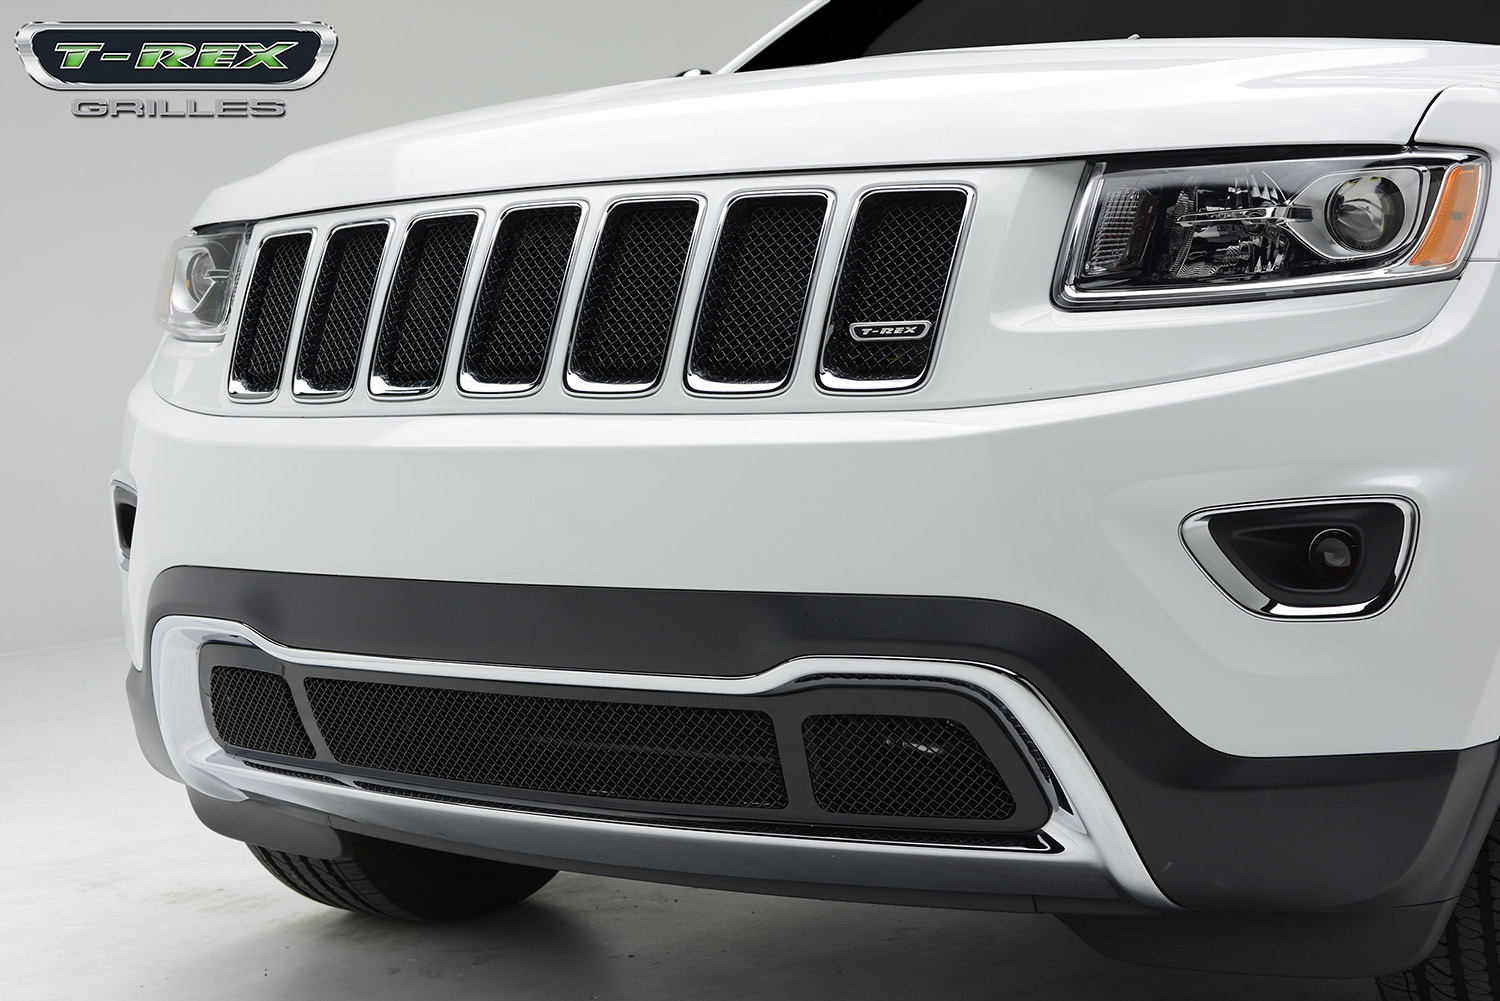 2014 jeep grand cherokee sport series formed mesh grille all black. Black Bedroom Furniture Sets. Home Design Ideas